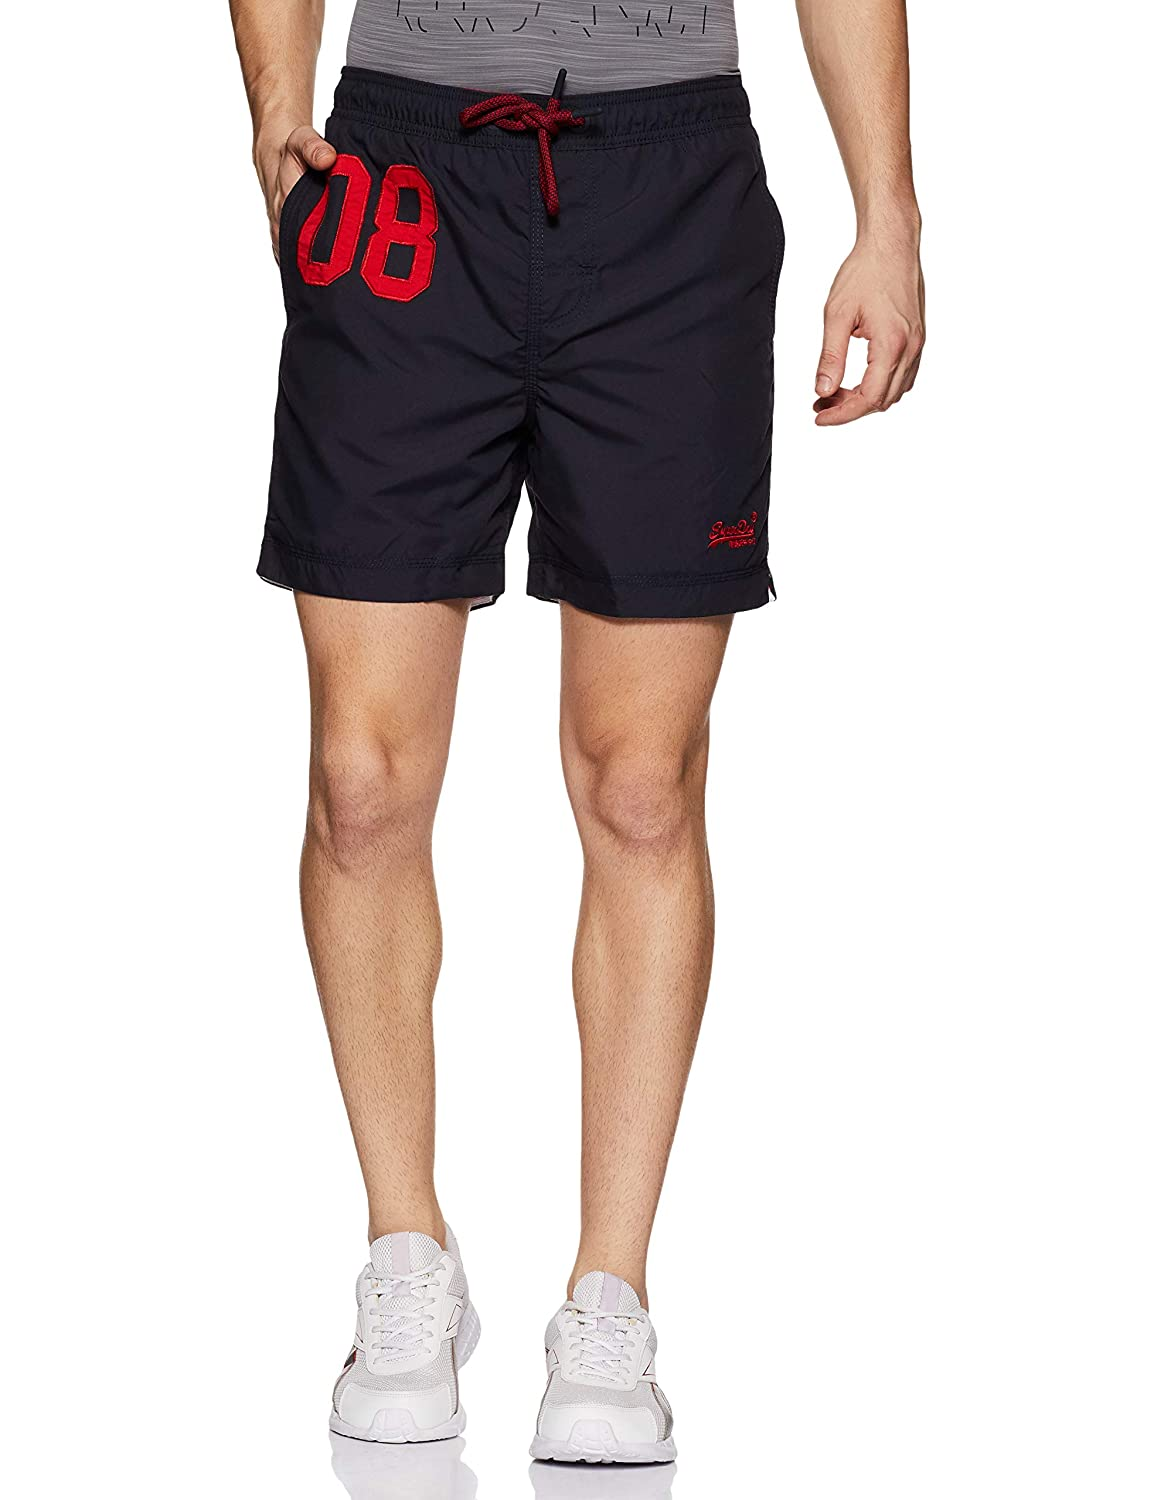 9a2df82644247 Superdry Men's Water Polo Swim Short: Amazon.co.uk: Clothing